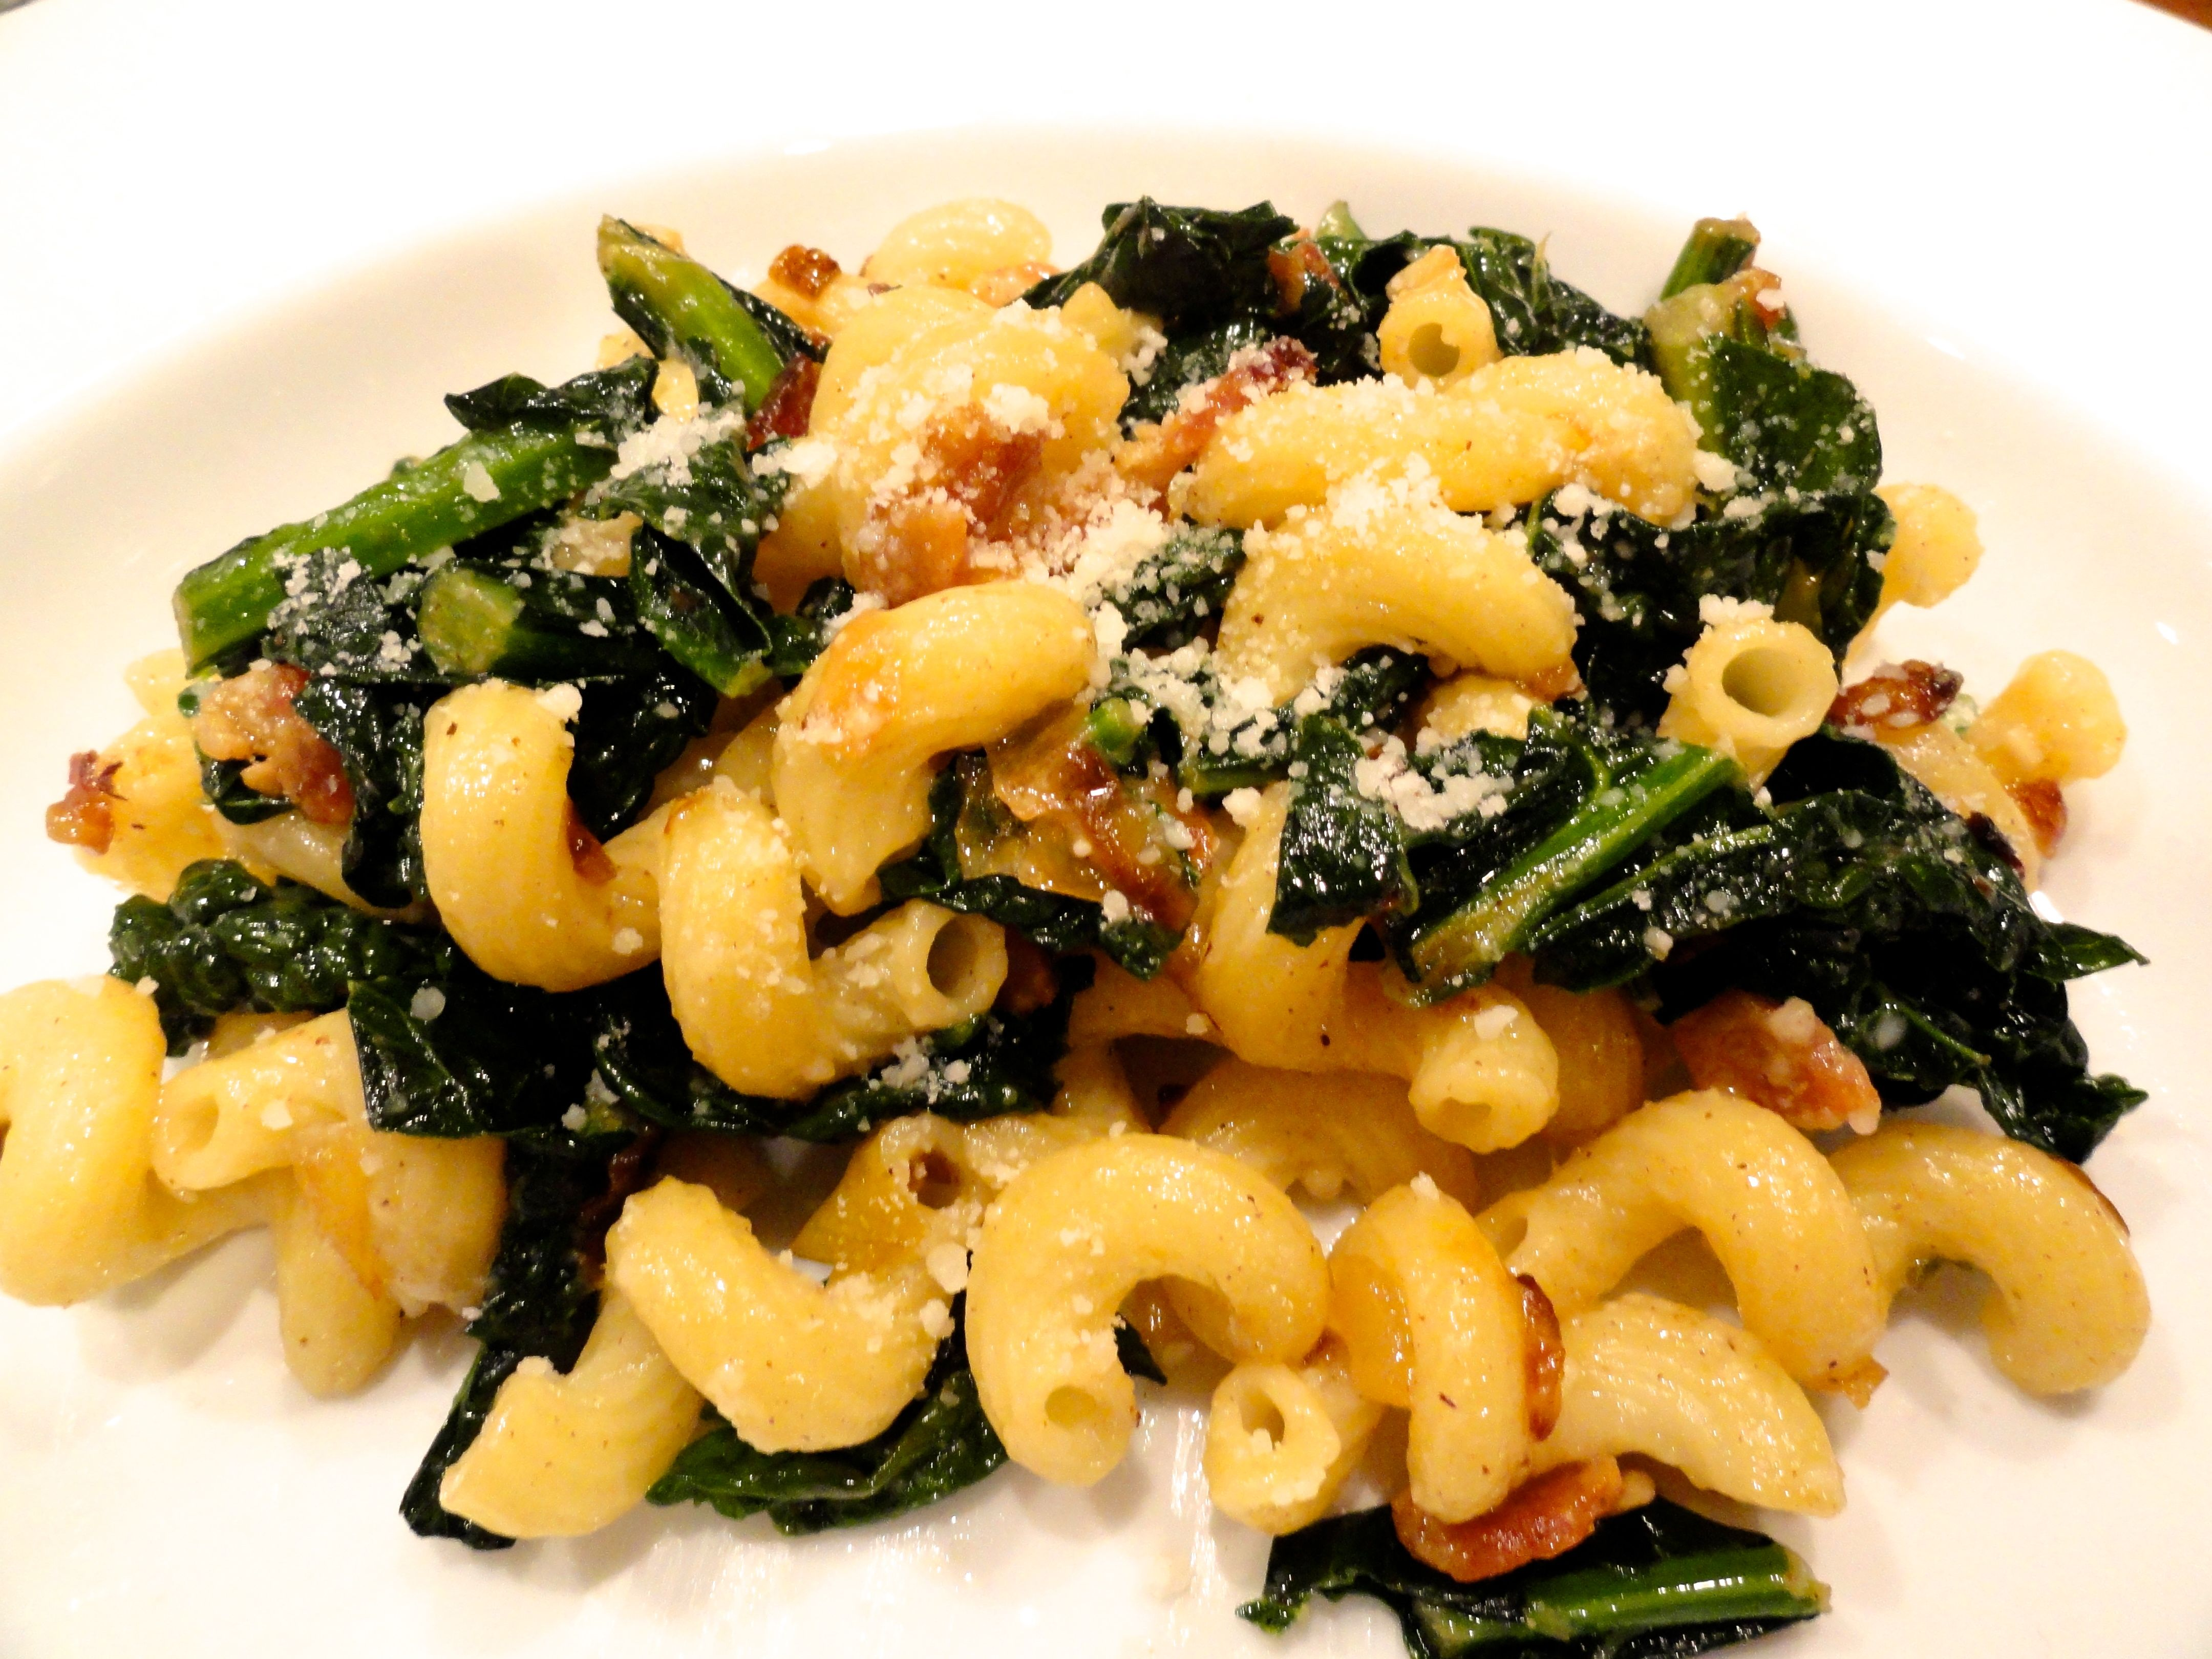 Kale with pasta recipes